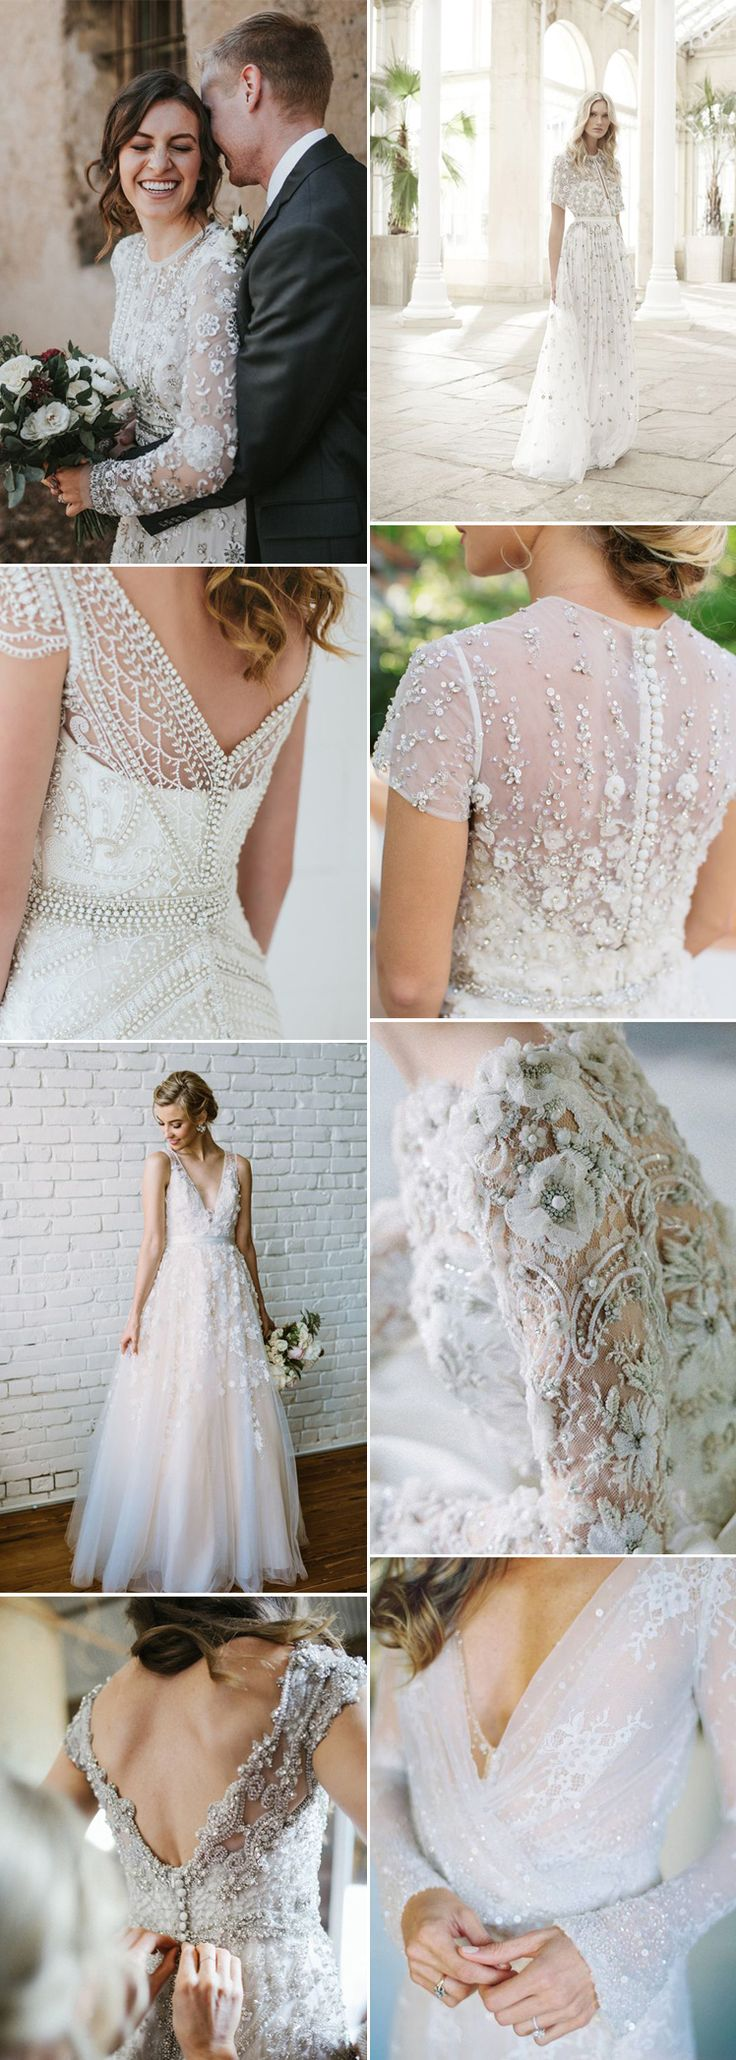 Embellished Wedding Dress or Plain – What's Your Style